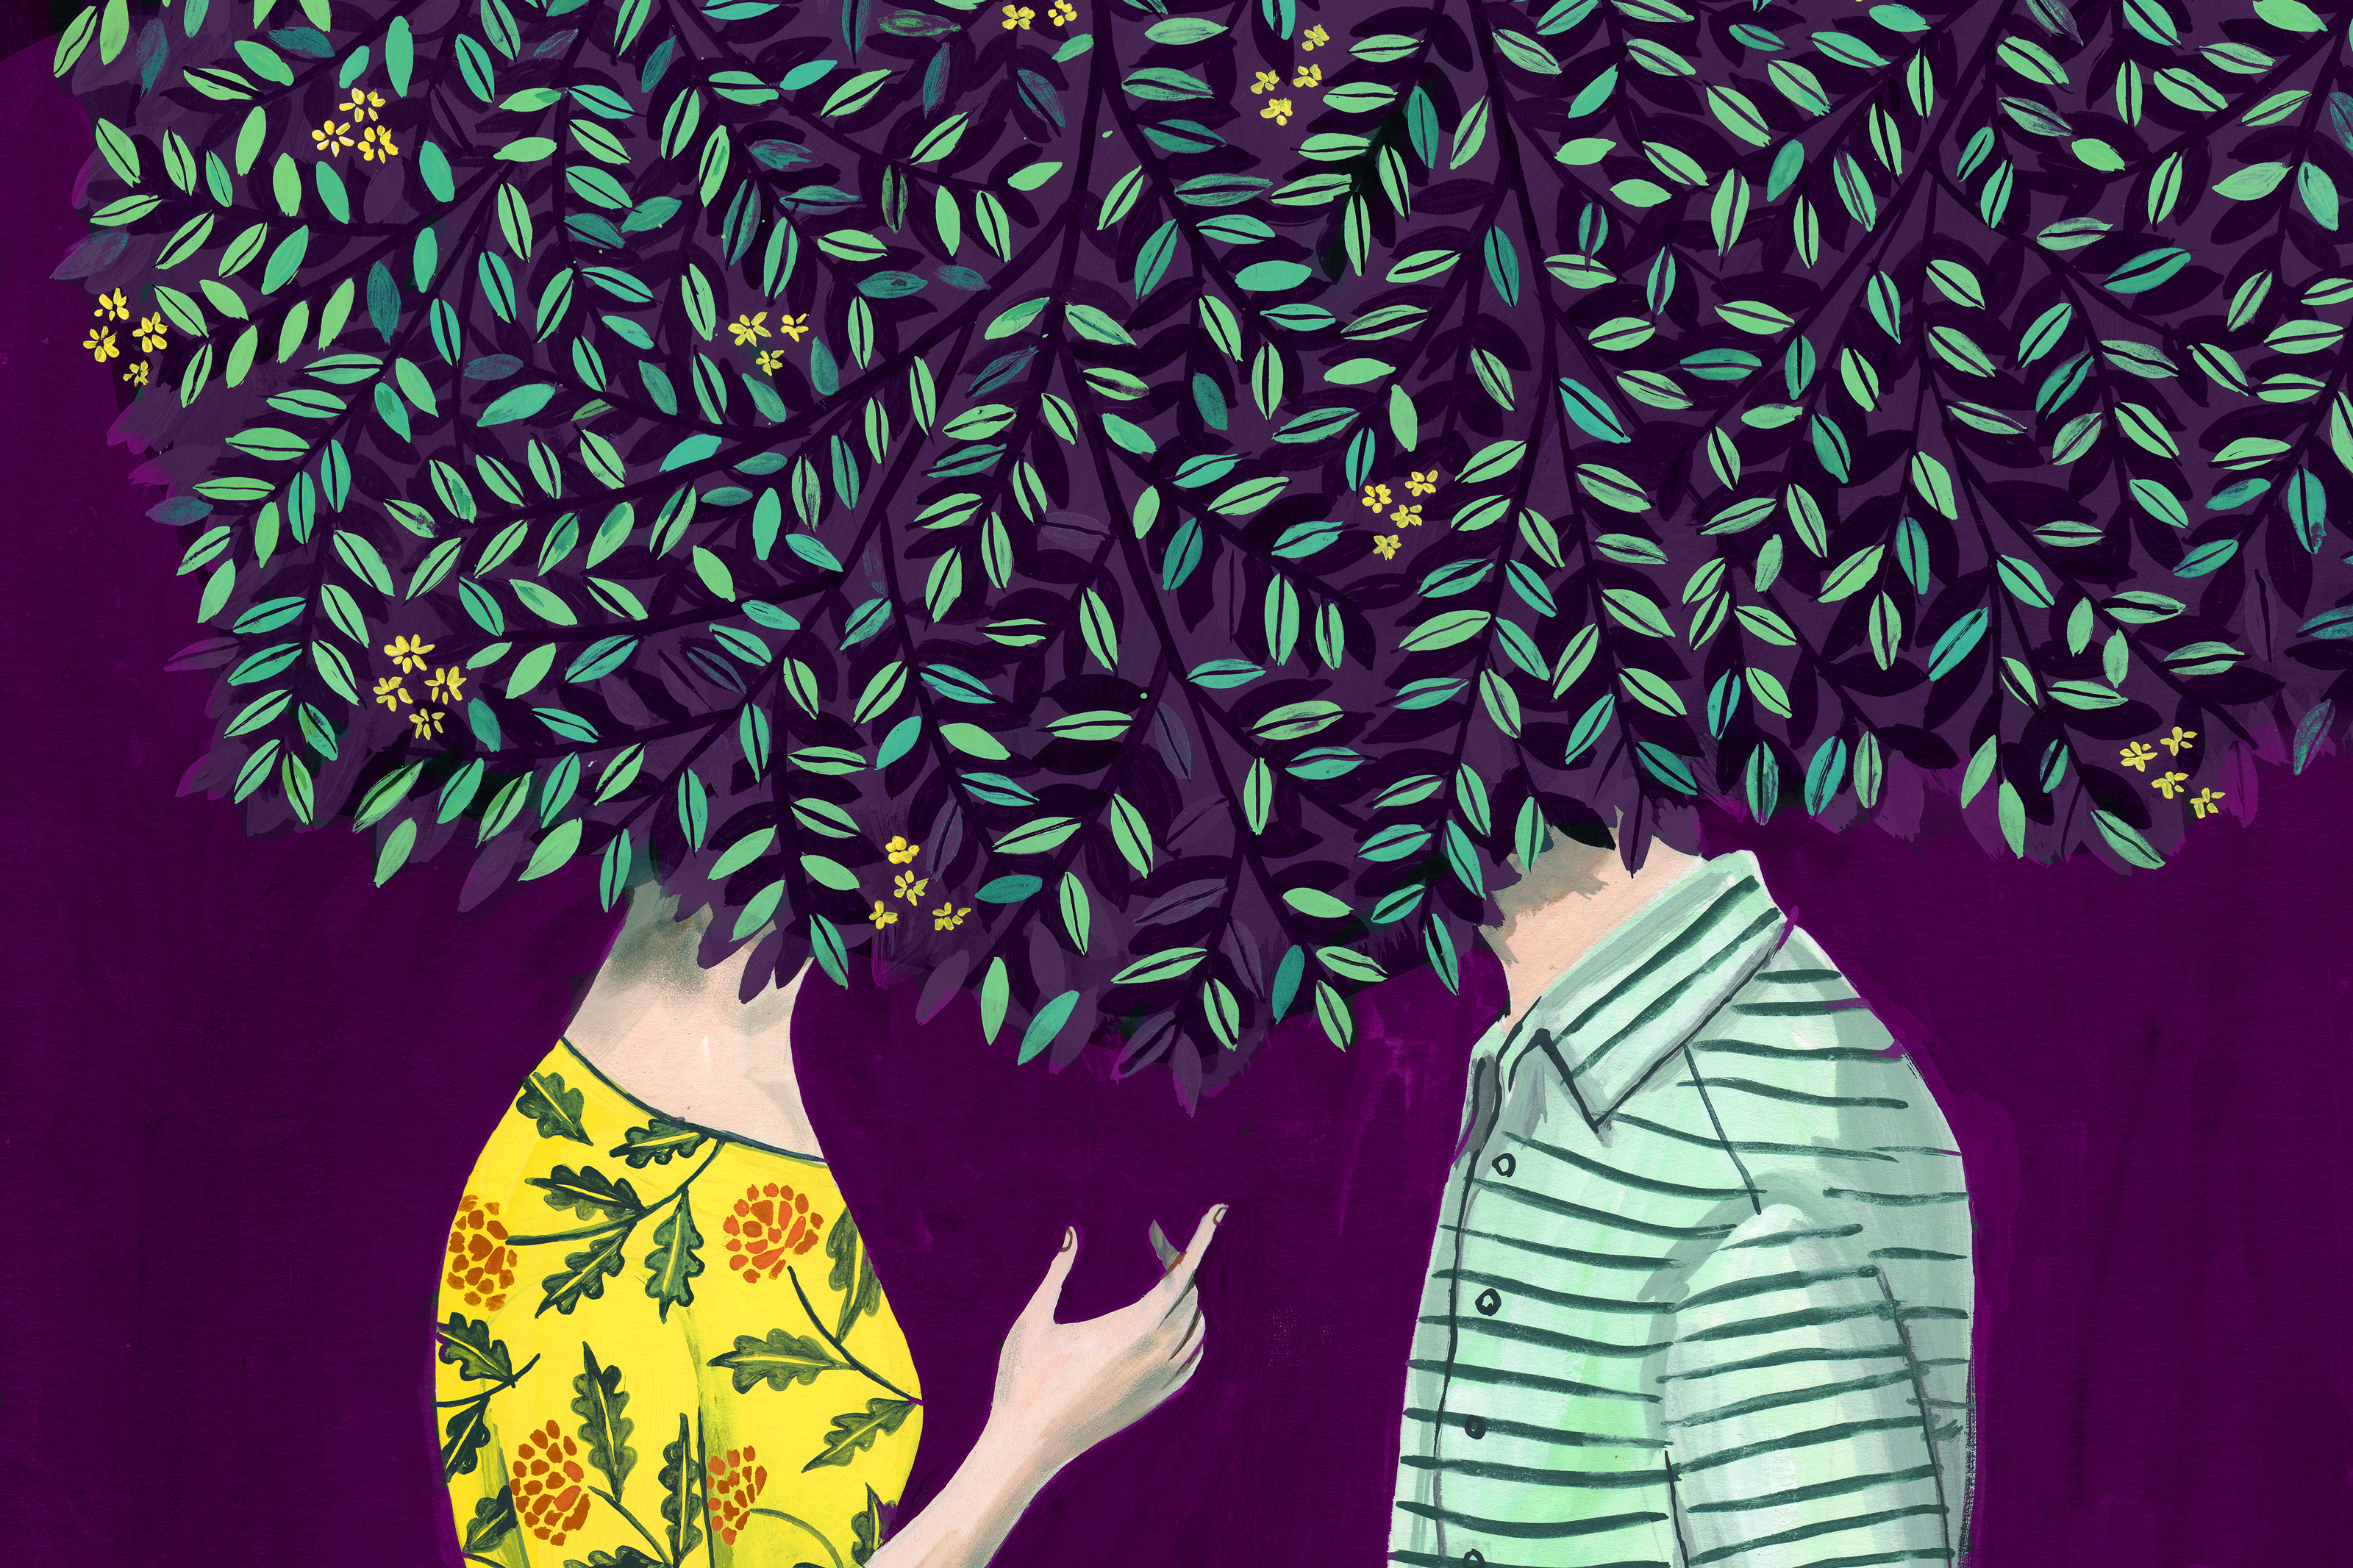 Illustration of a woman and a man with their heads in trees